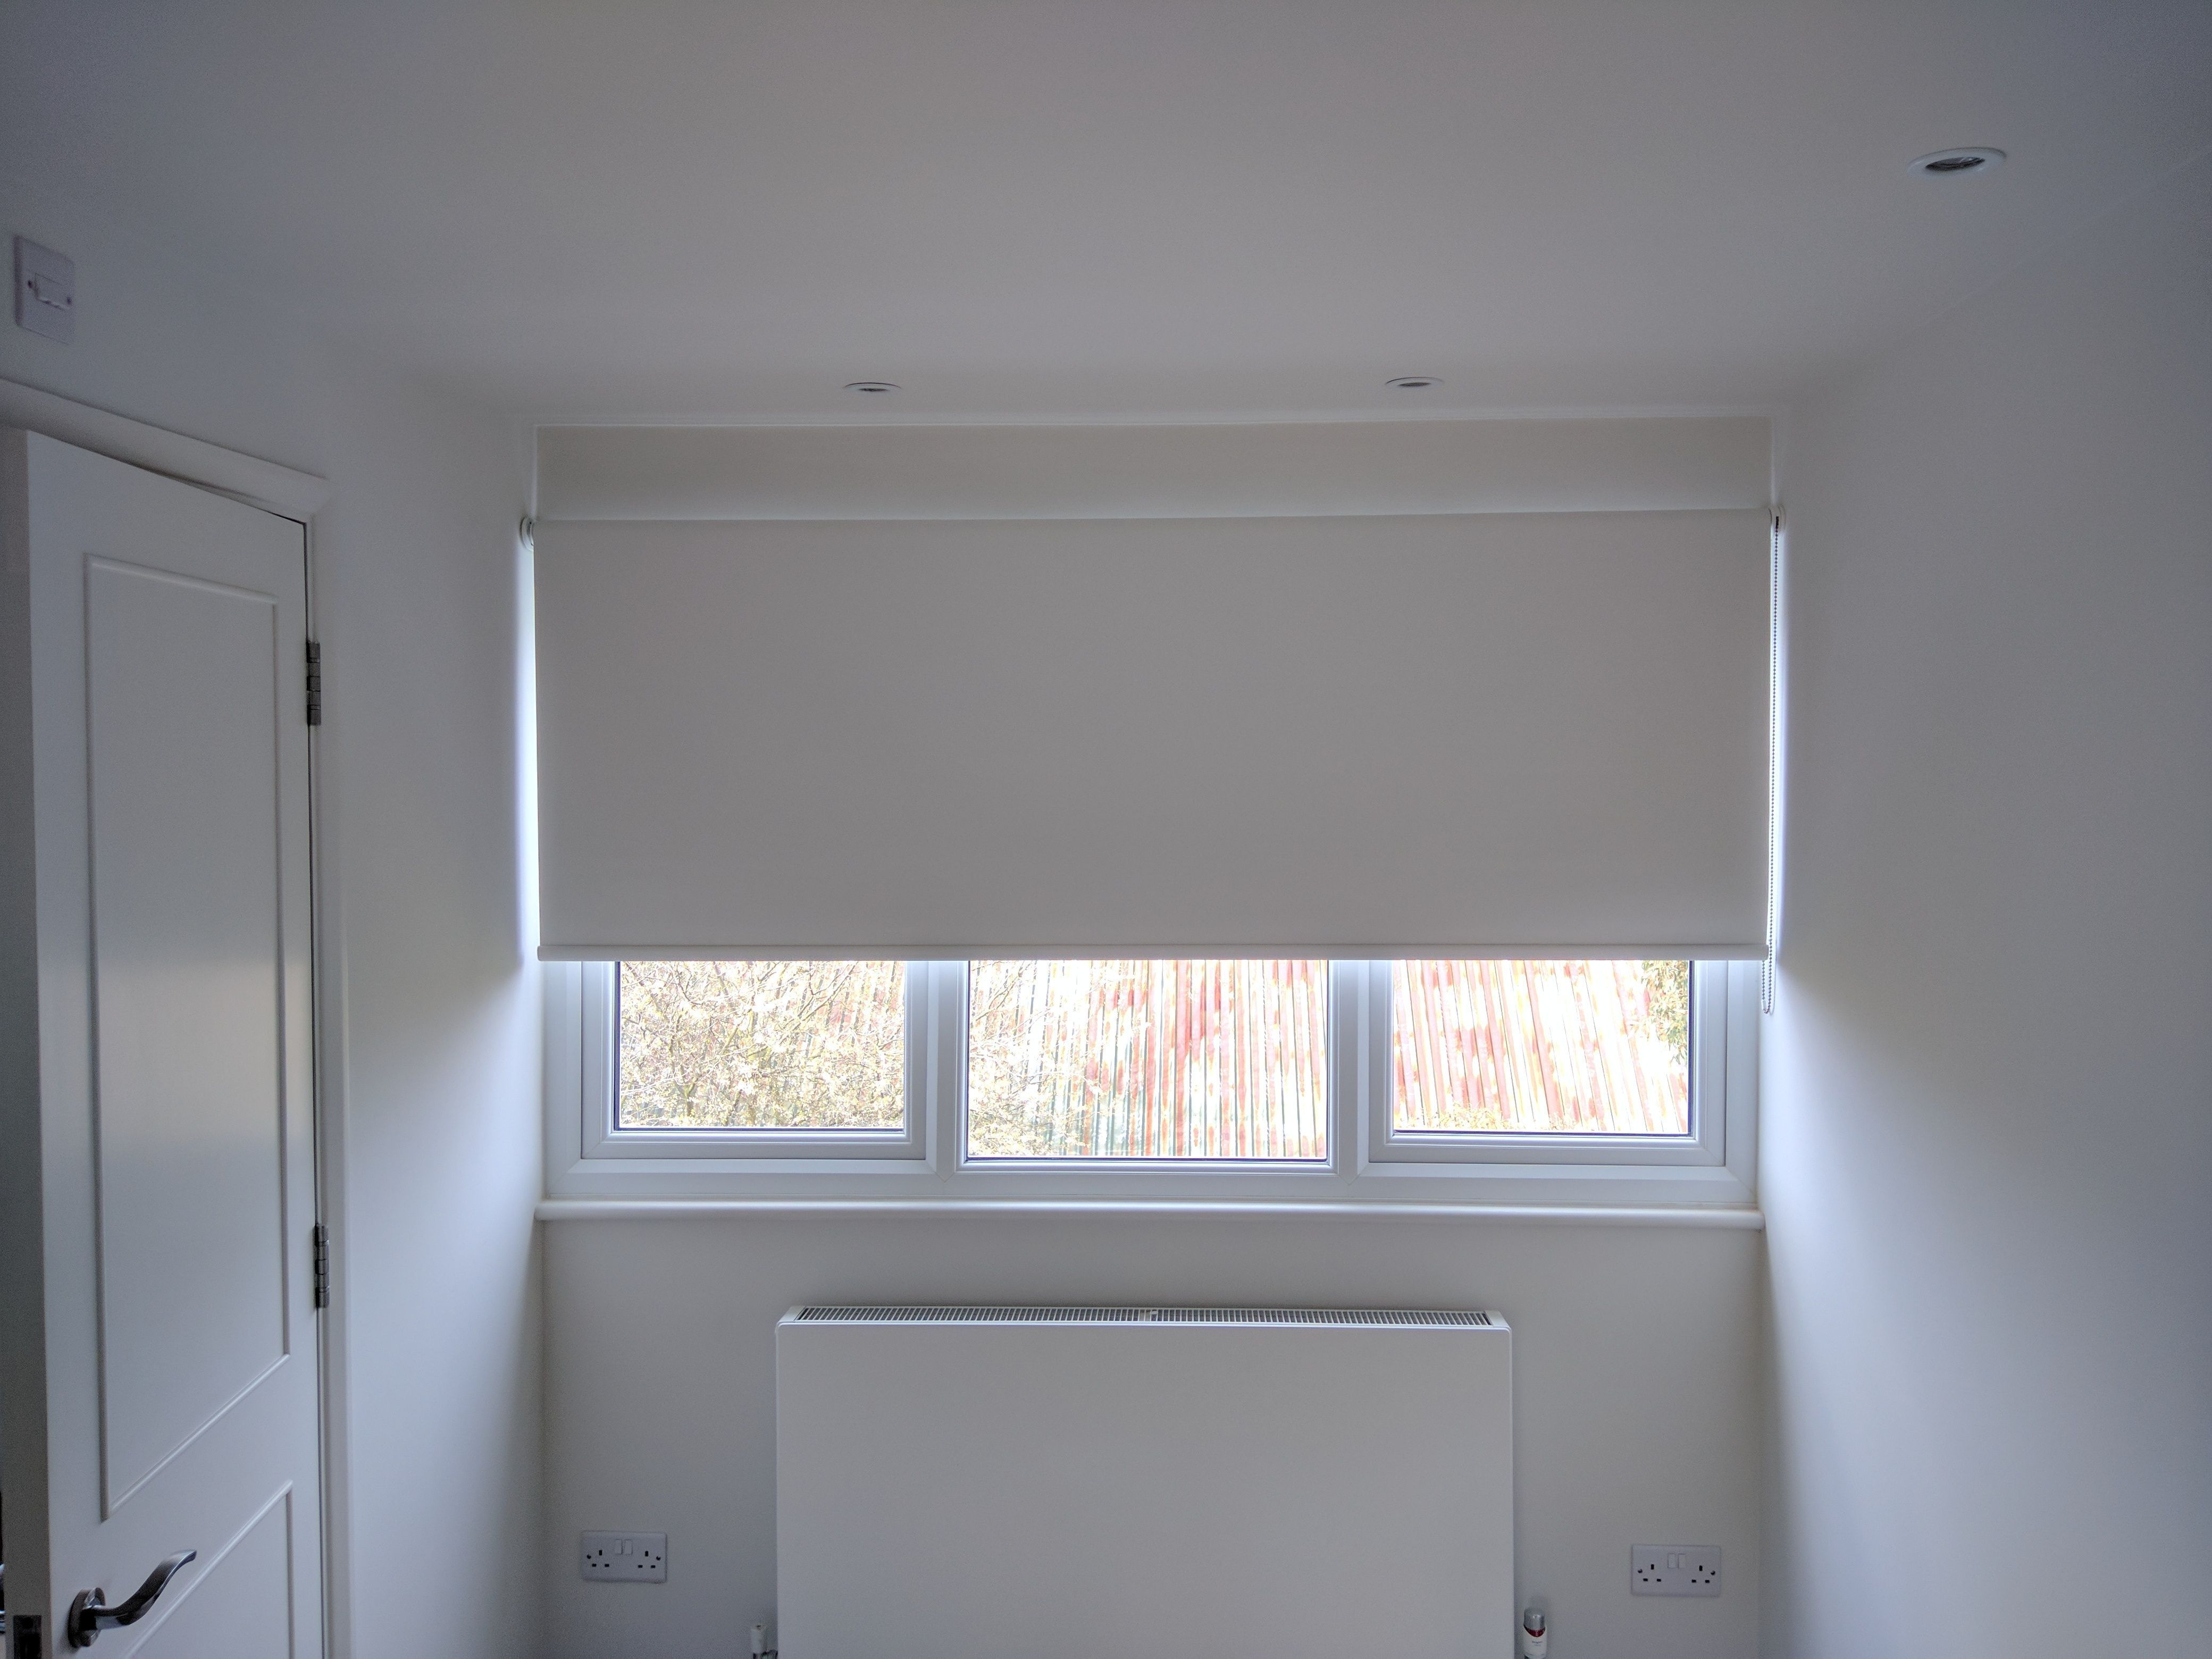 Blackout roller blind in polar white colour fitted to bedroom window